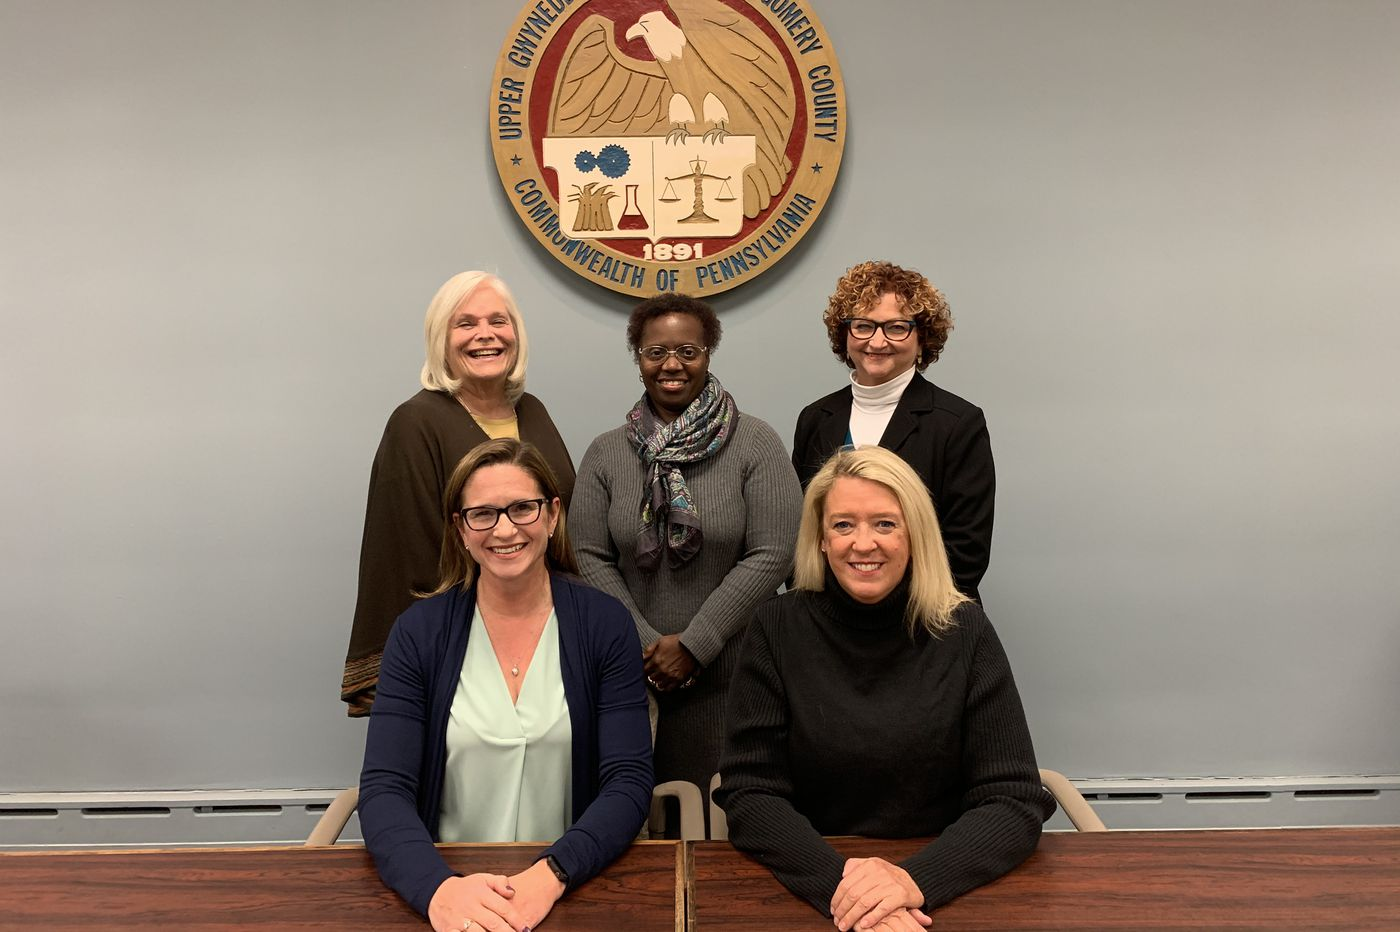 Women are taking over leadership of this suburban Philly town for the first time ever